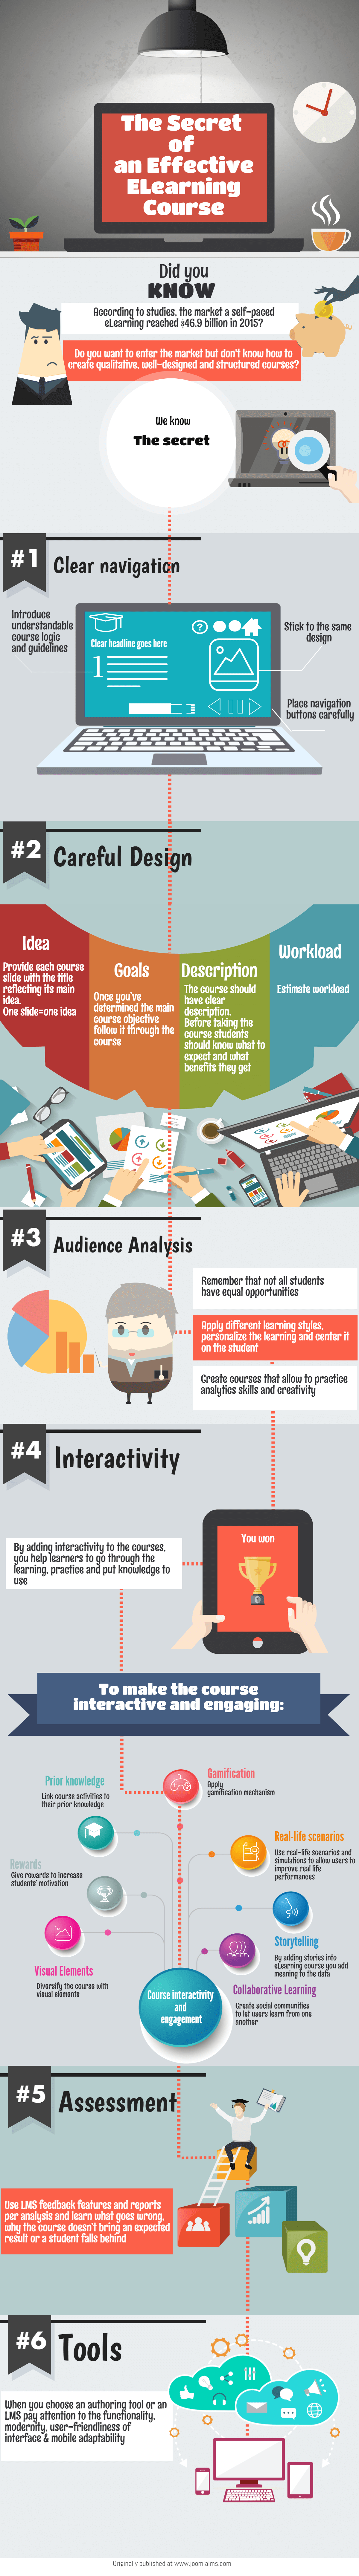 secret-of-effective-elearning-course-infographic